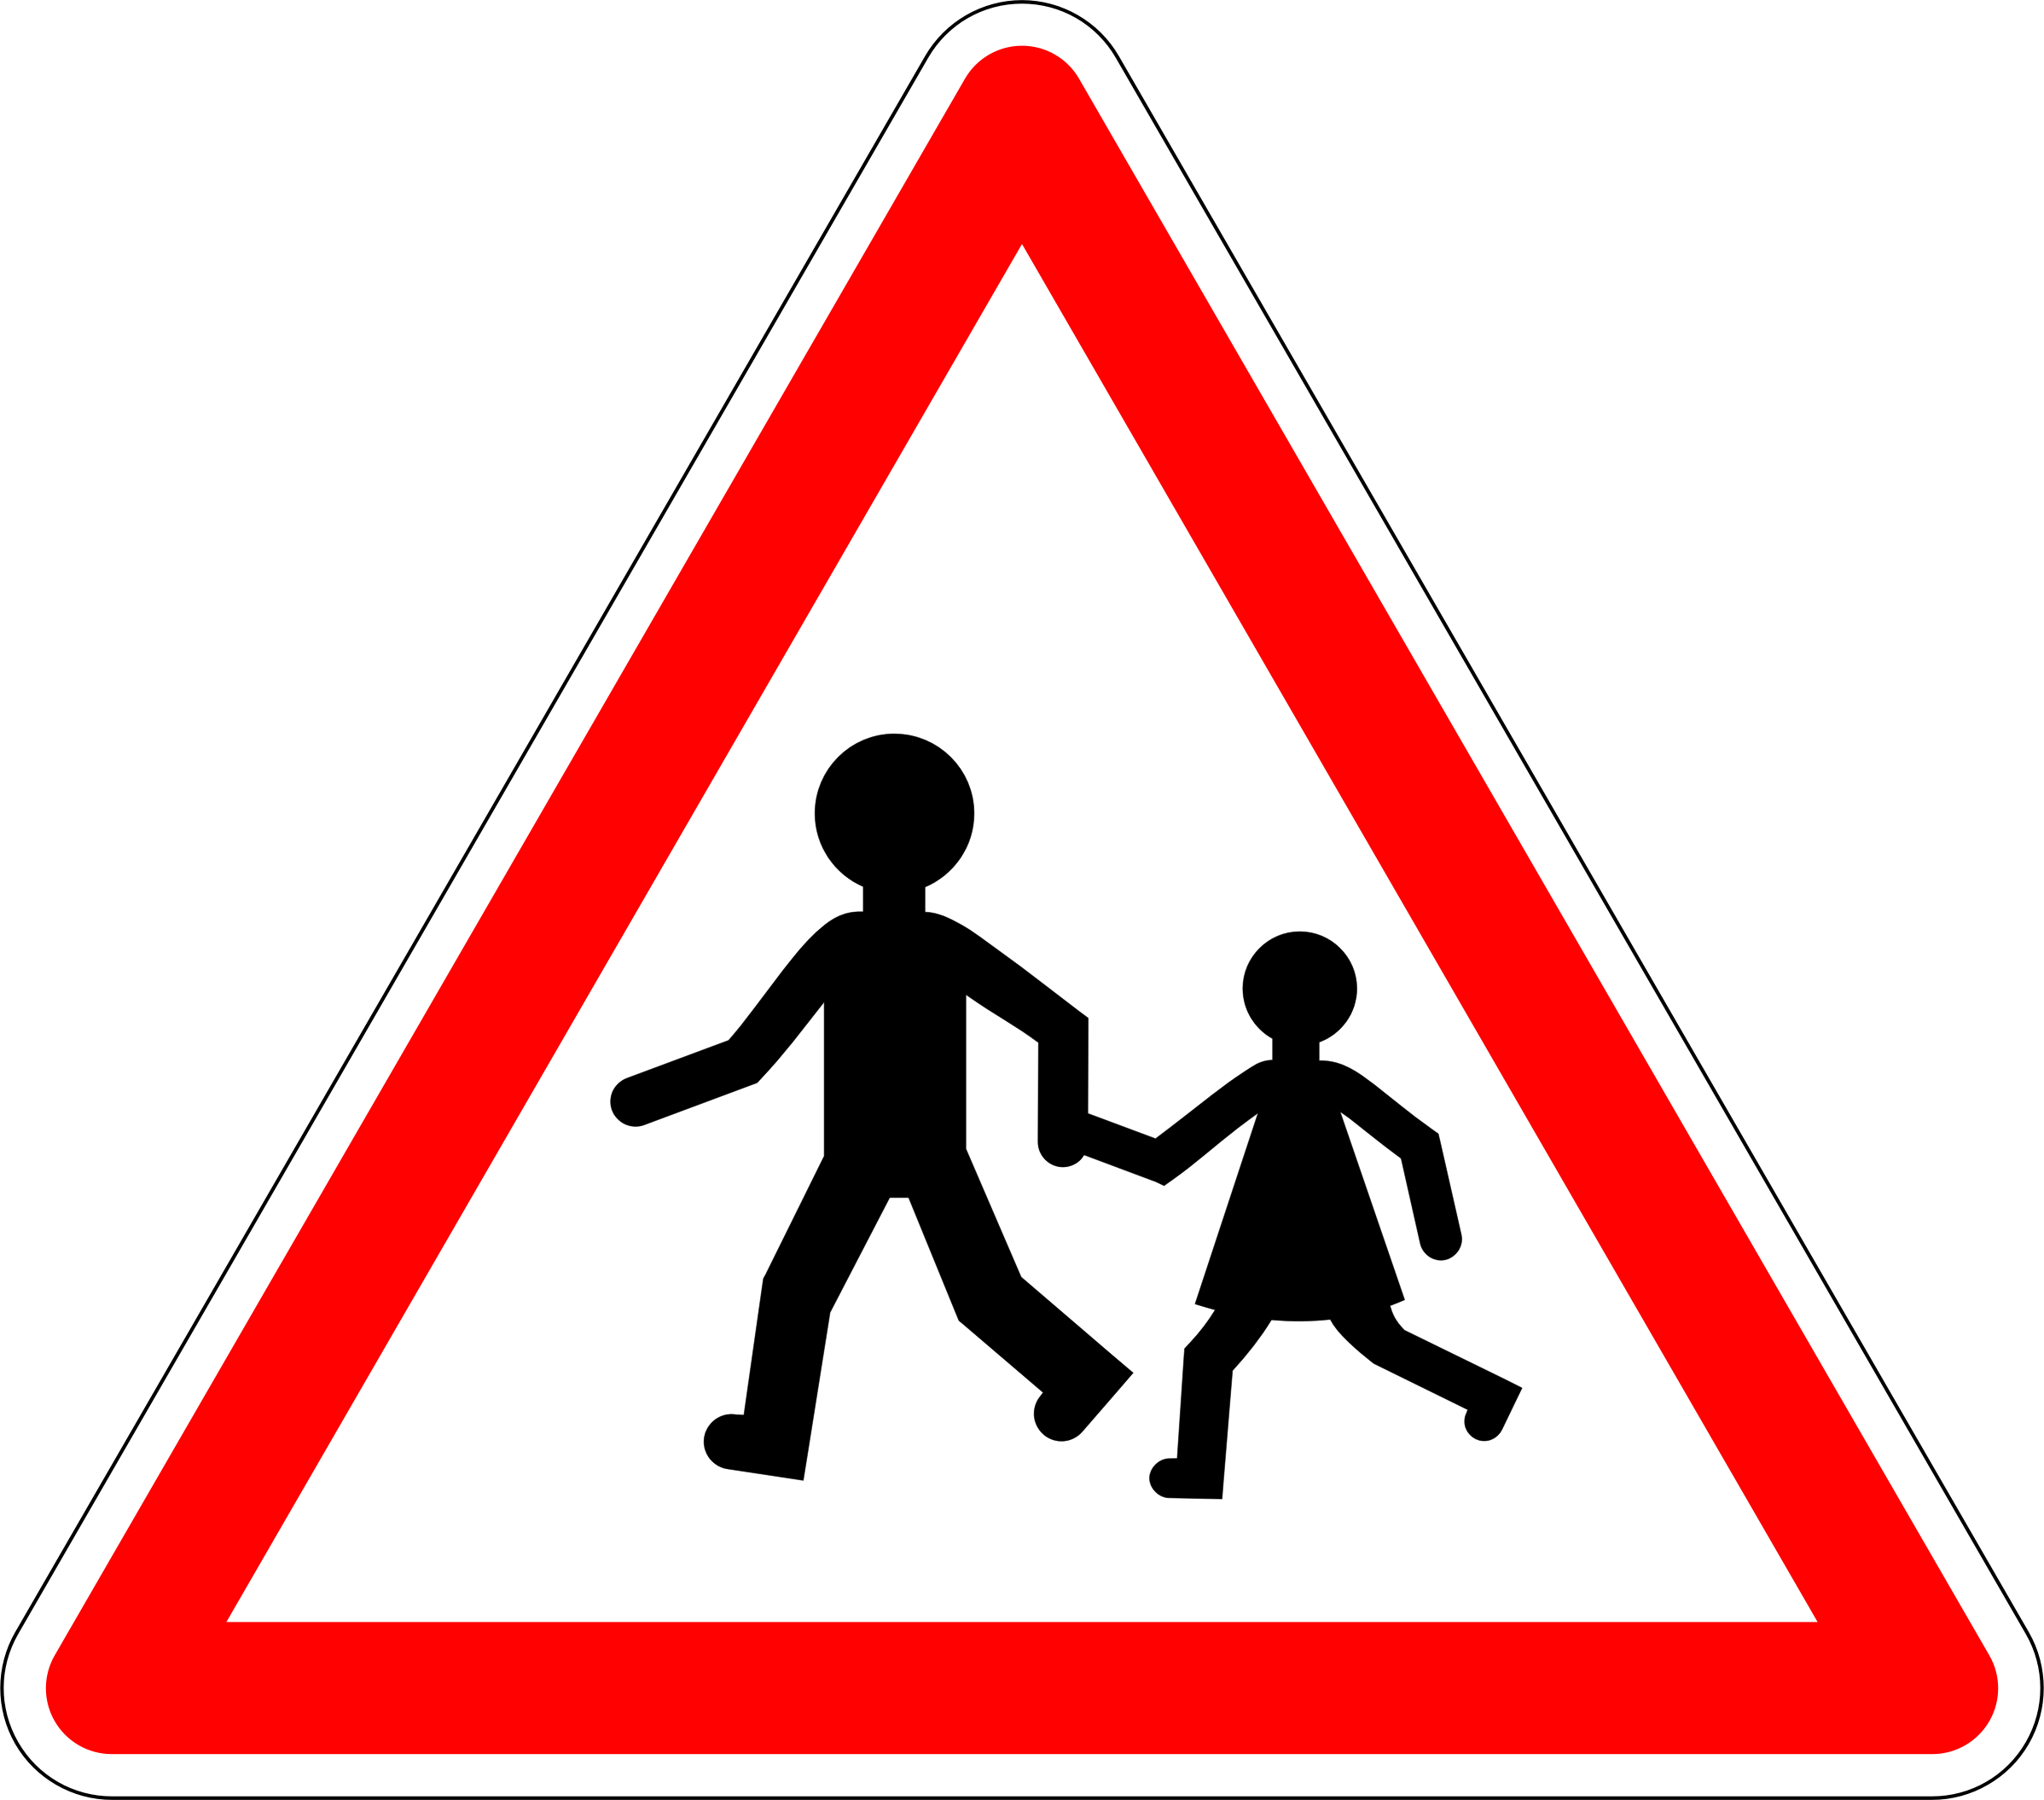 School exit warning tab by Justin Ternet